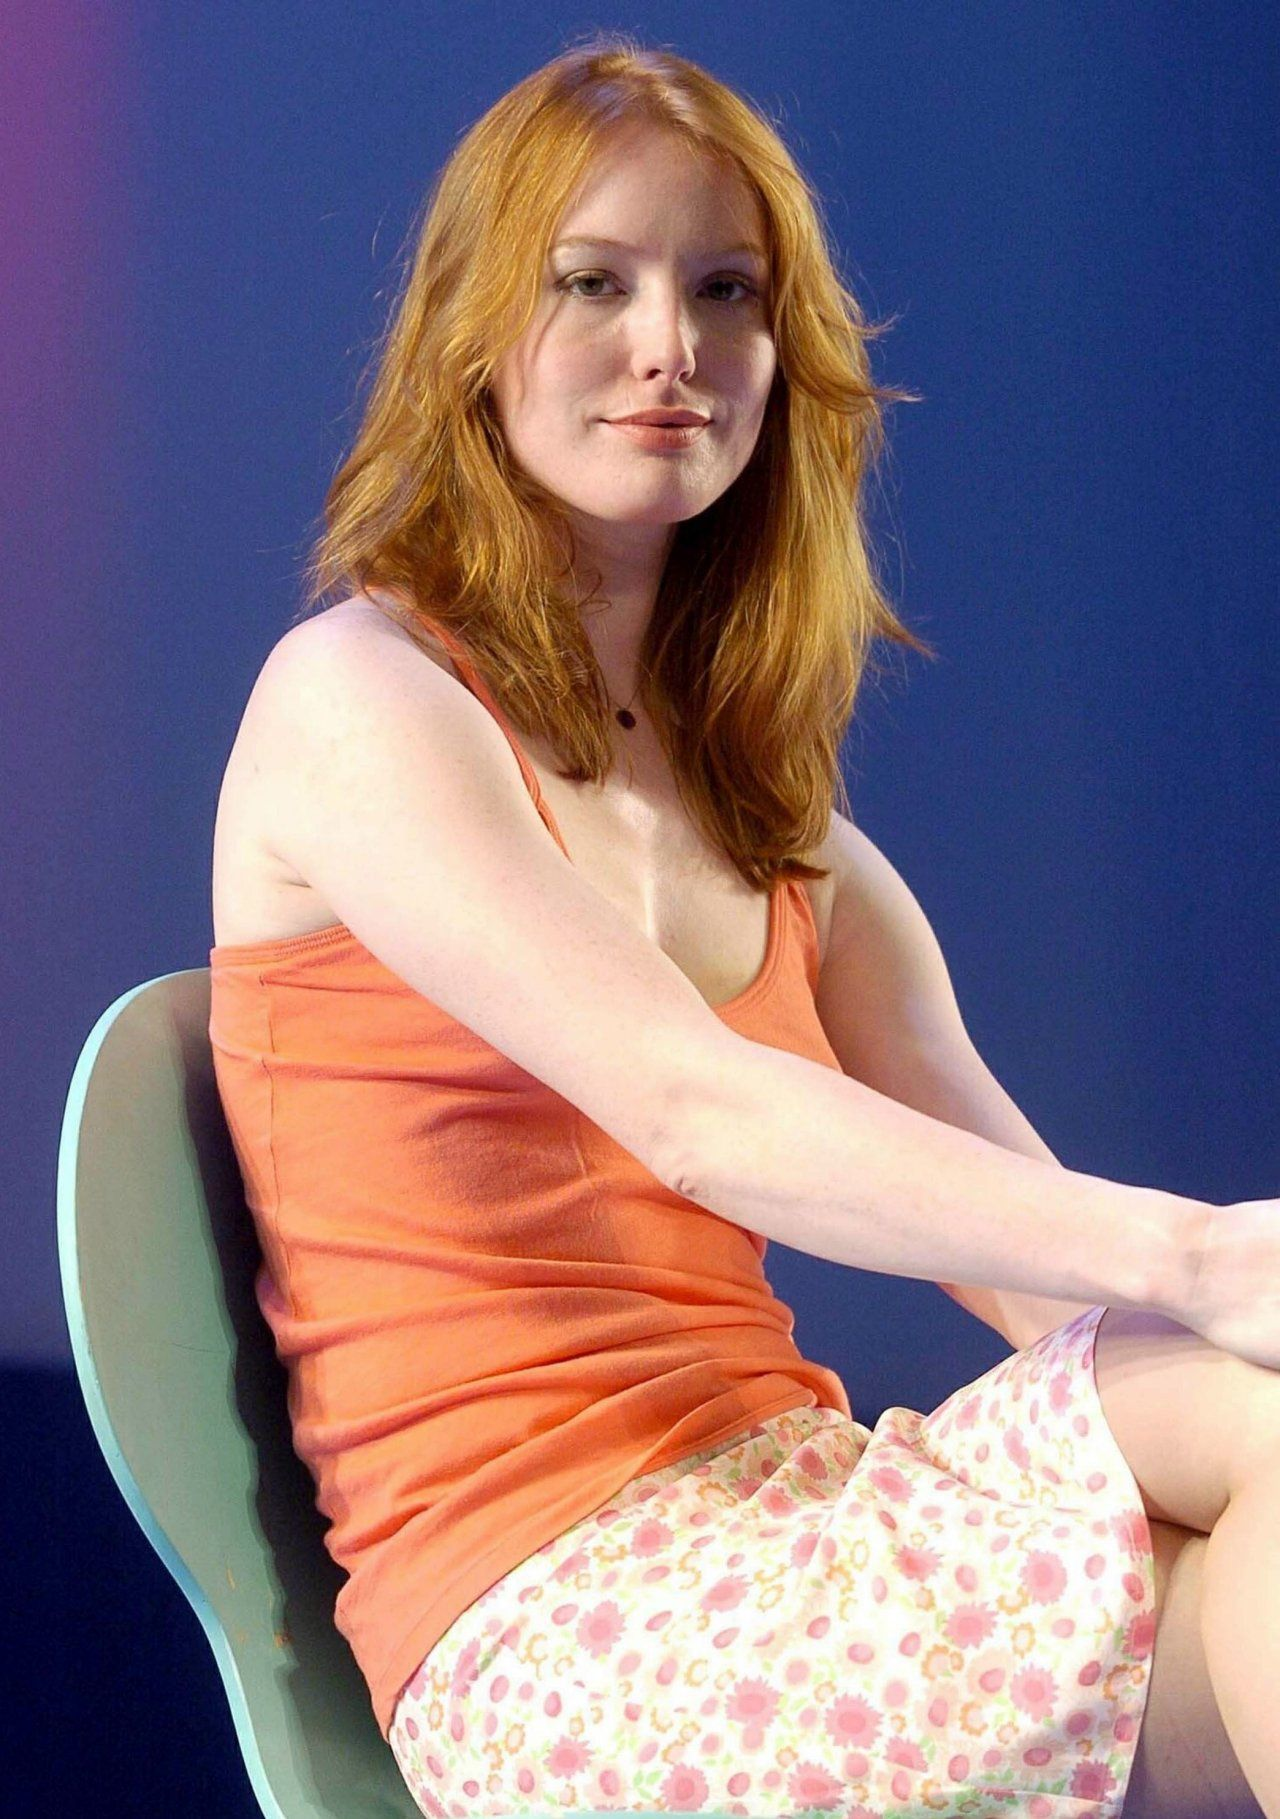 That interfere, Actress alicia witt nude remarkable